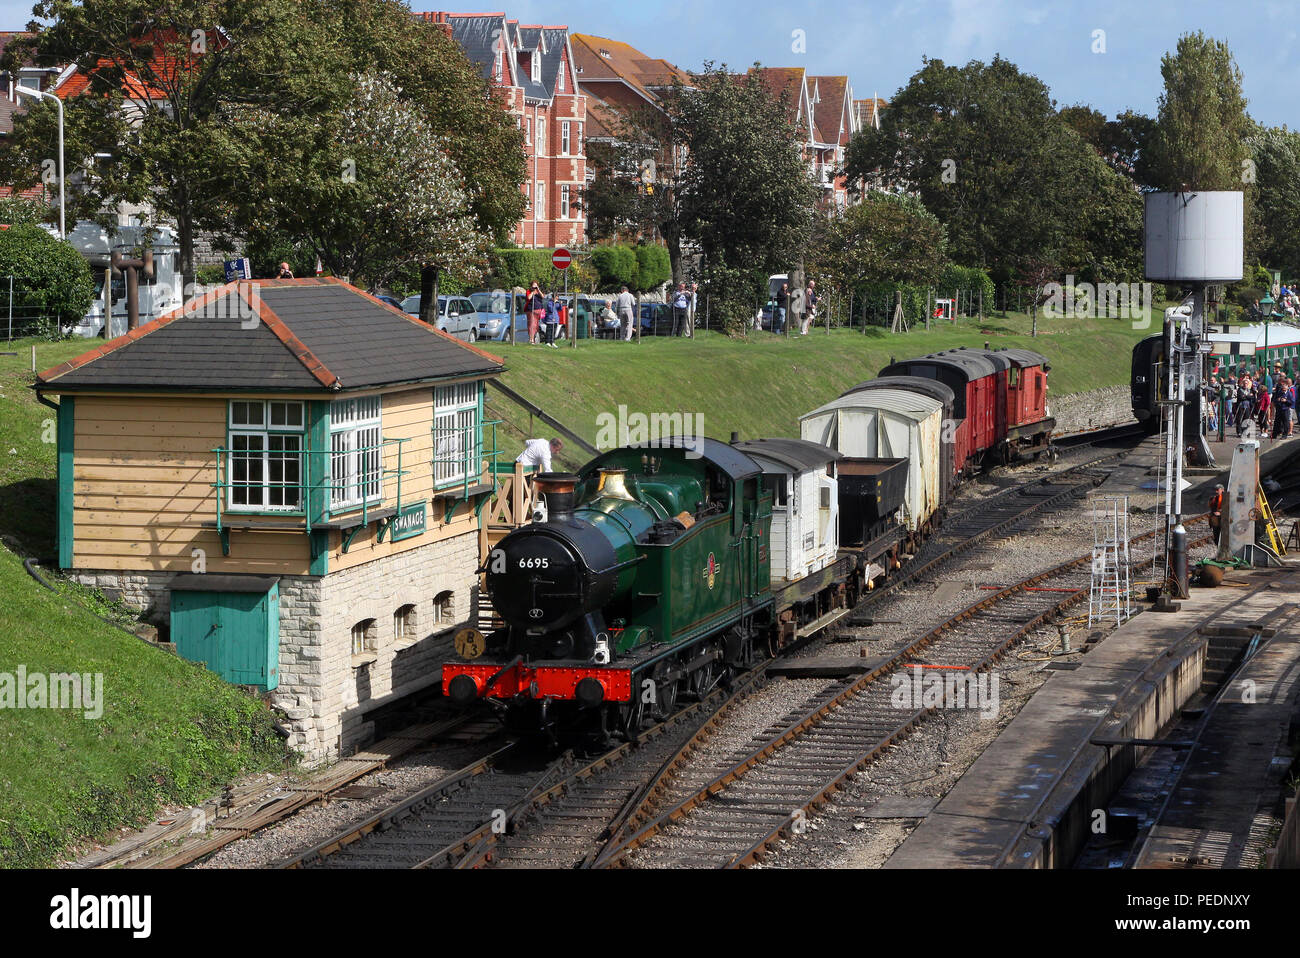 6695 departs from Swanage 11.9.11